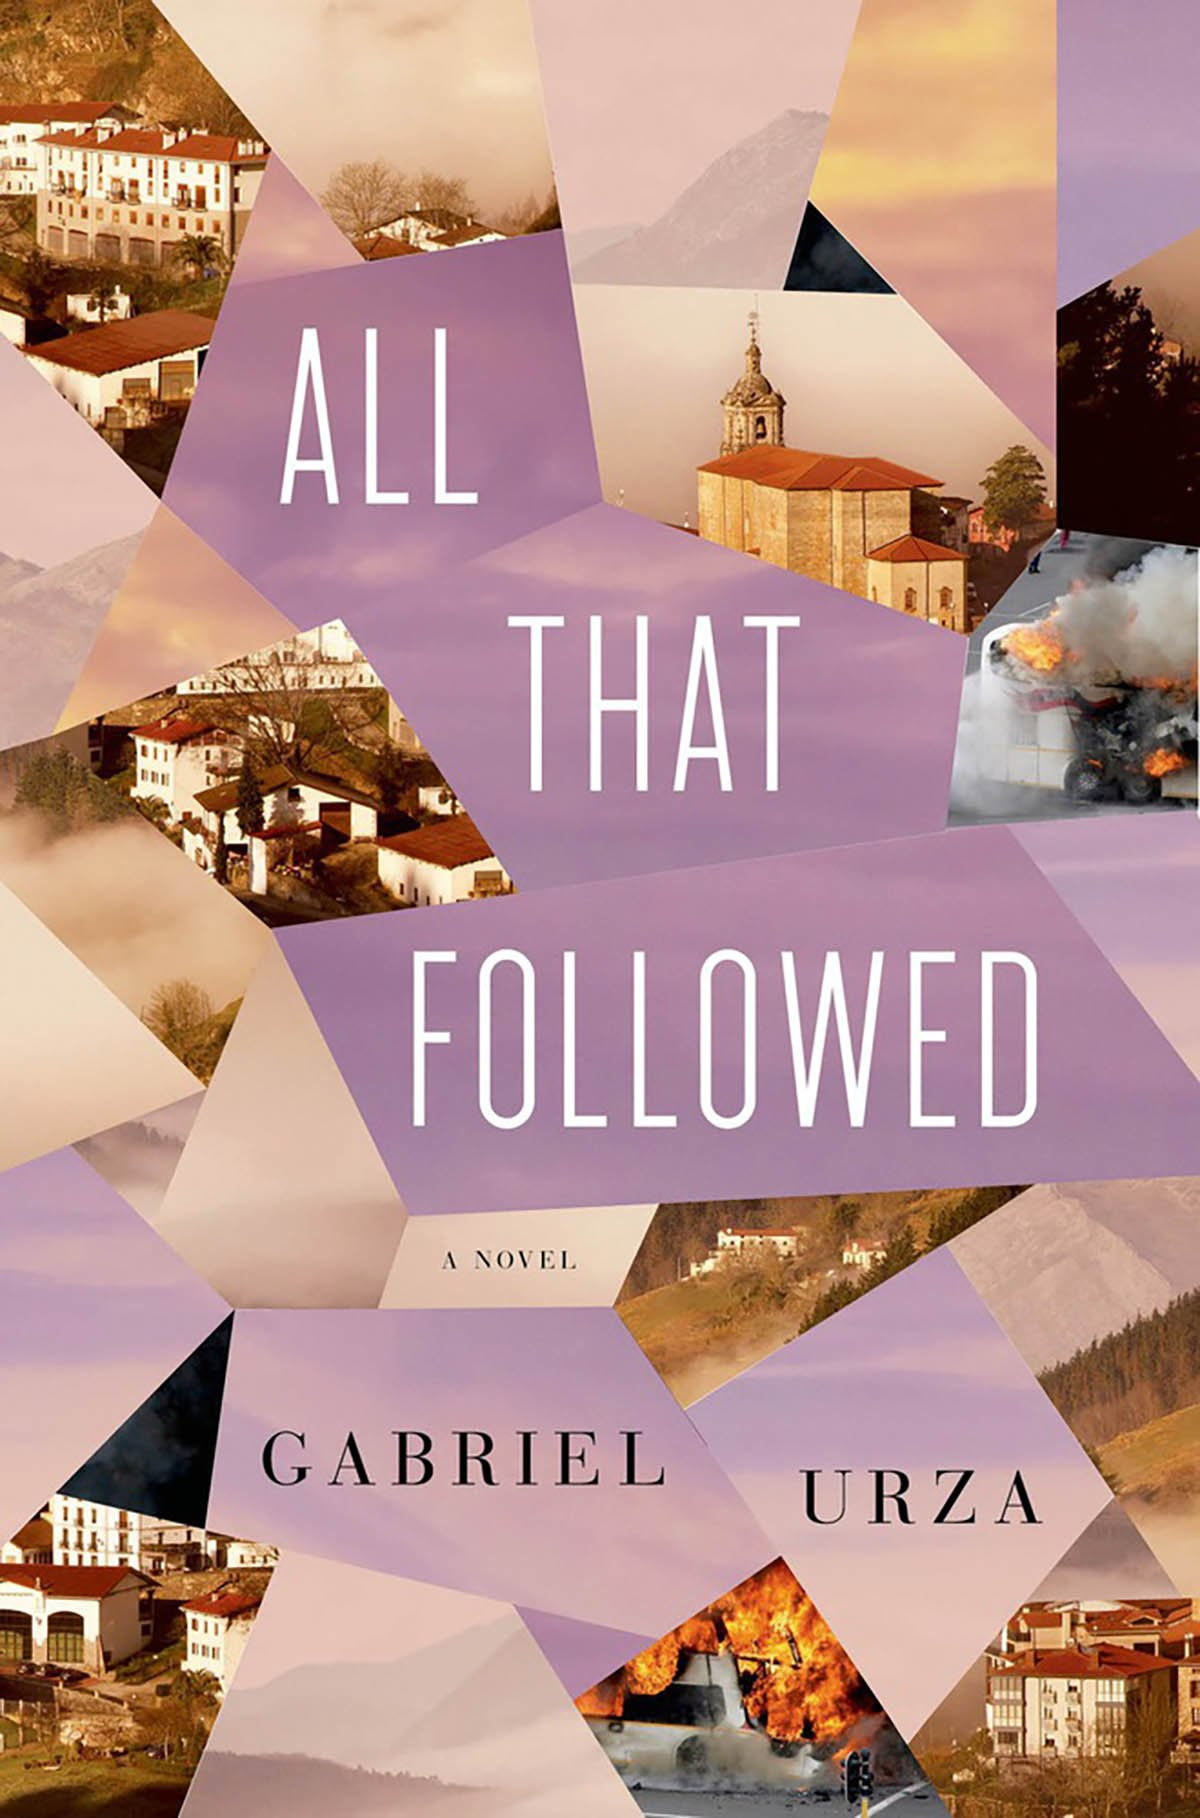 How Pain Shapes the Future: Gabriel Urza's All That Followed